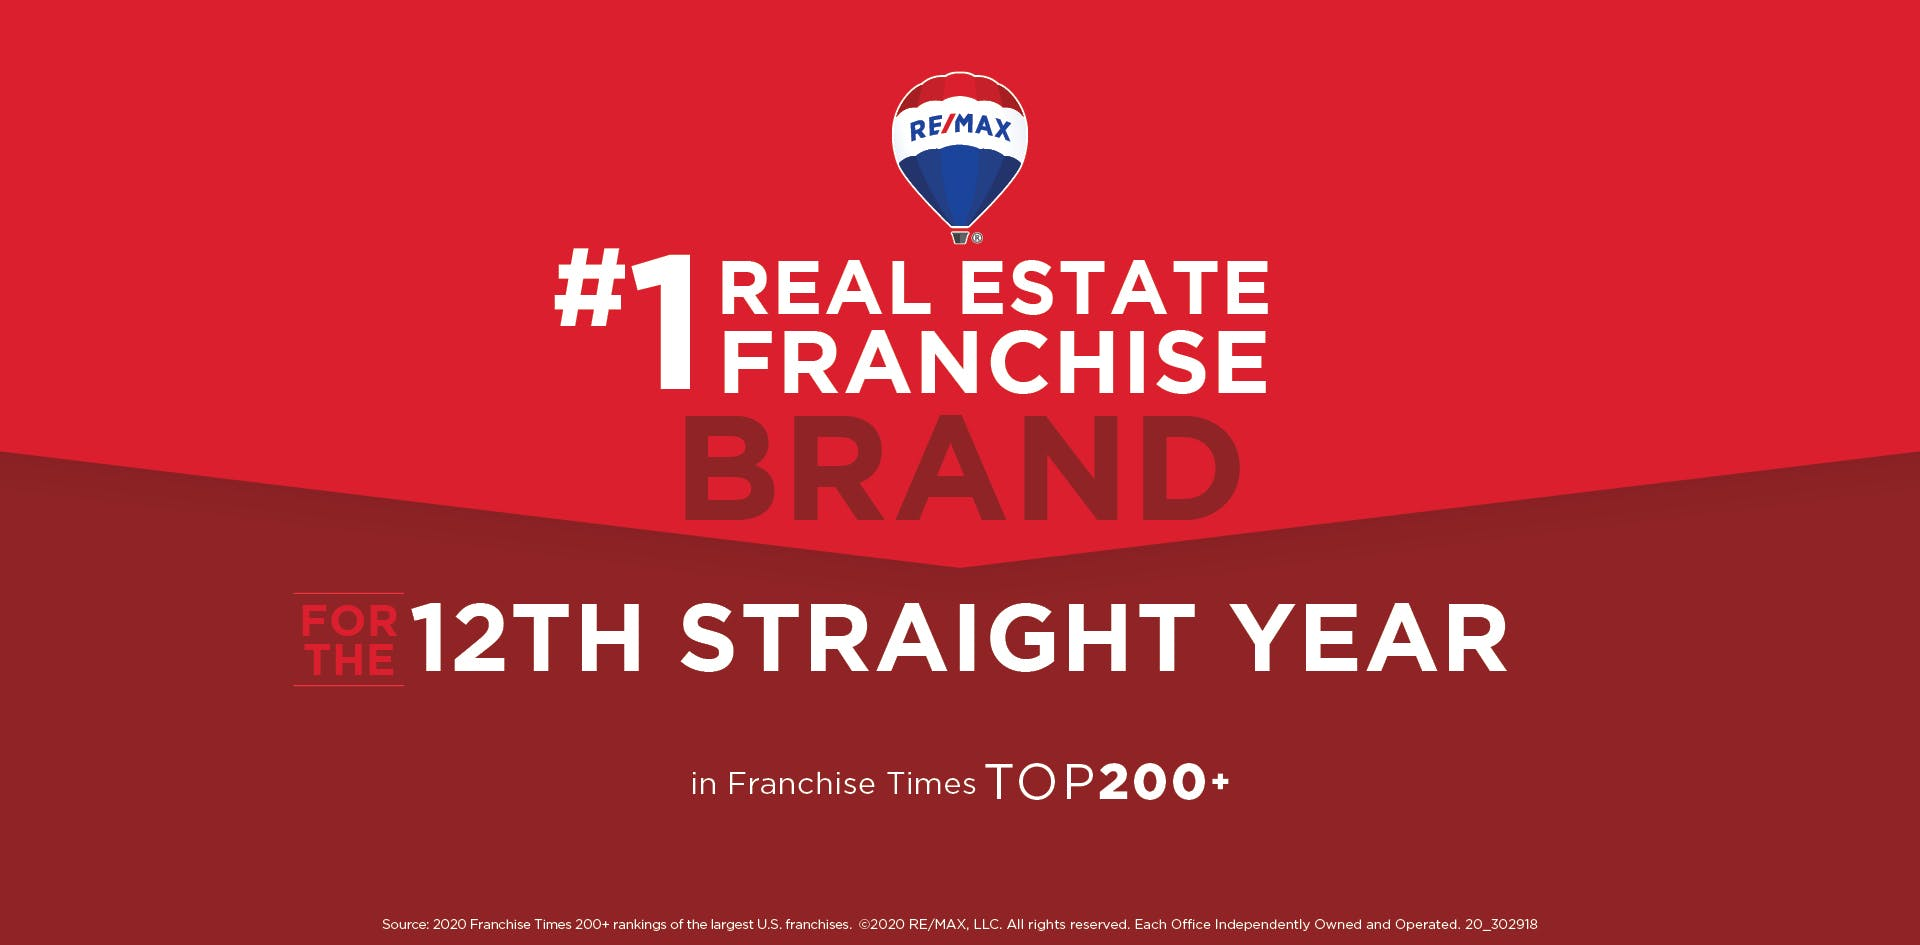 RE/MAX NAMED #1 REAL ESTATE IN FRANCHISE TIMES TOP 200